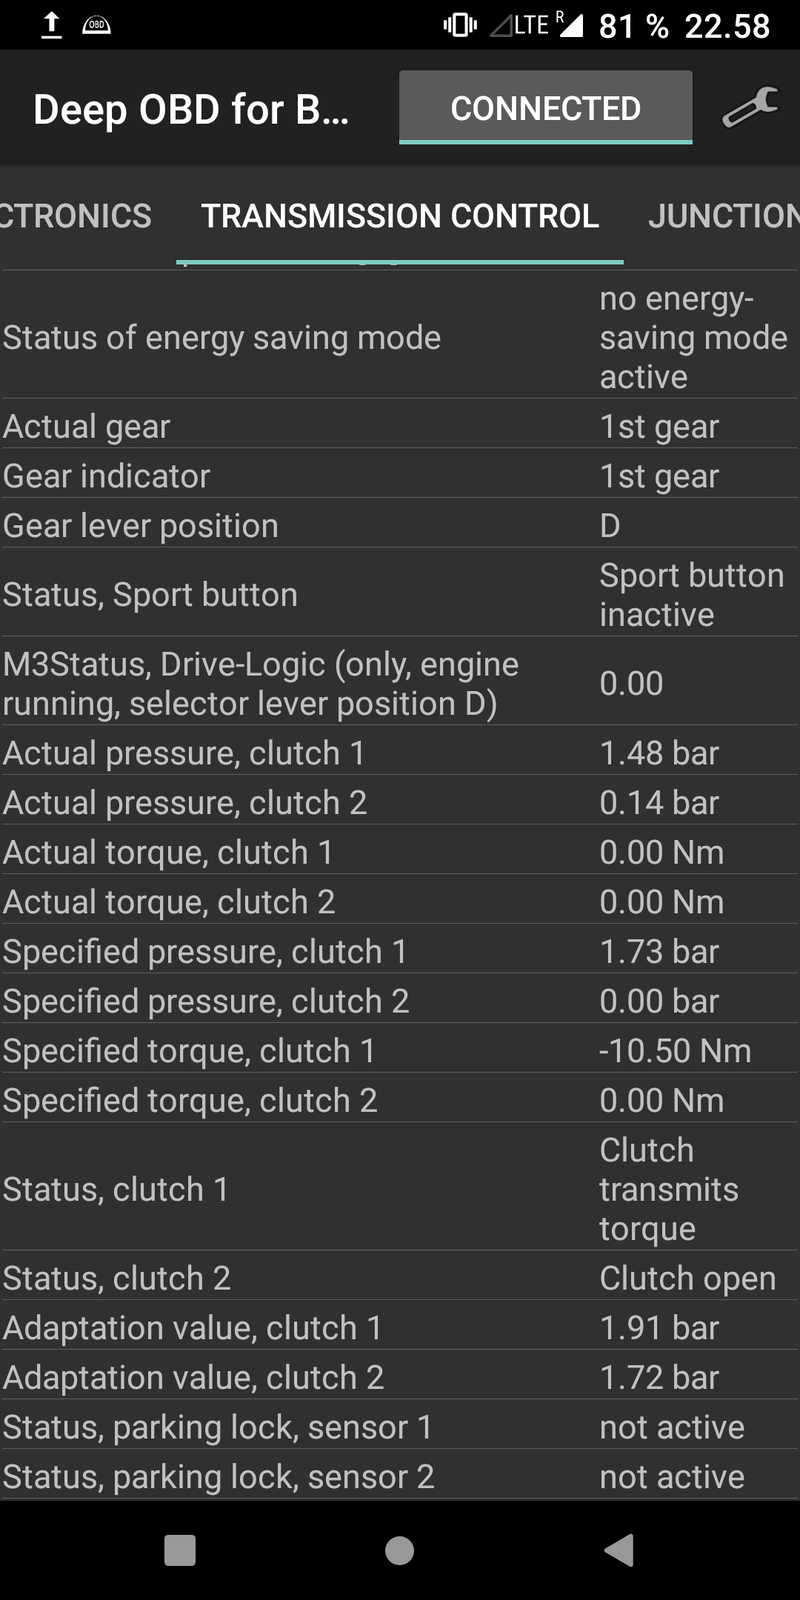 Screenshot_20200218-225826_Deep_OBD_for_BMW_and_VAG.png